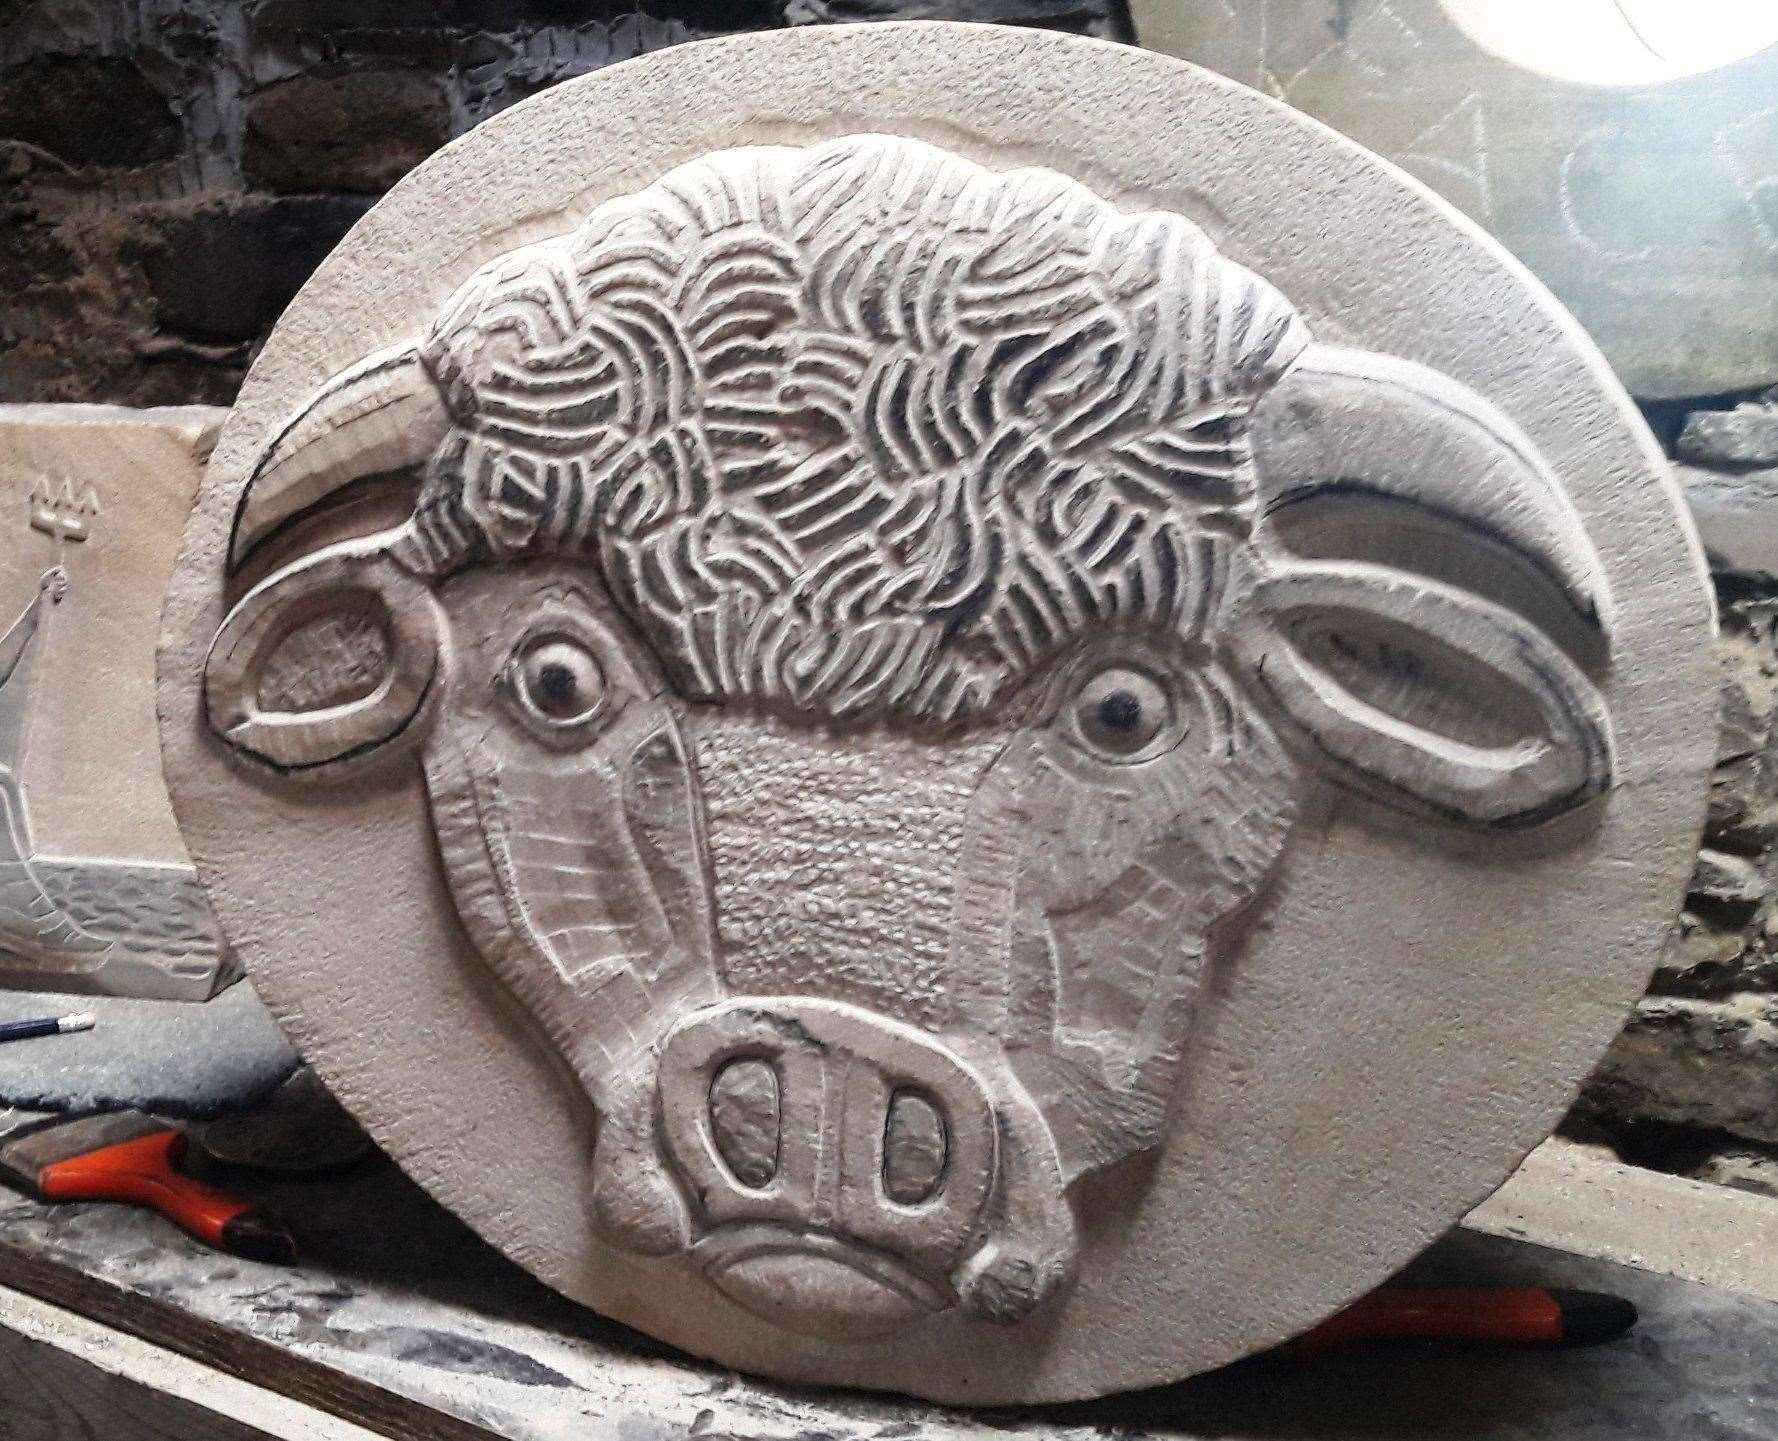 Stolen from Mid Clyth the stone carving shows a Highland cow. Weighs around 100kg.